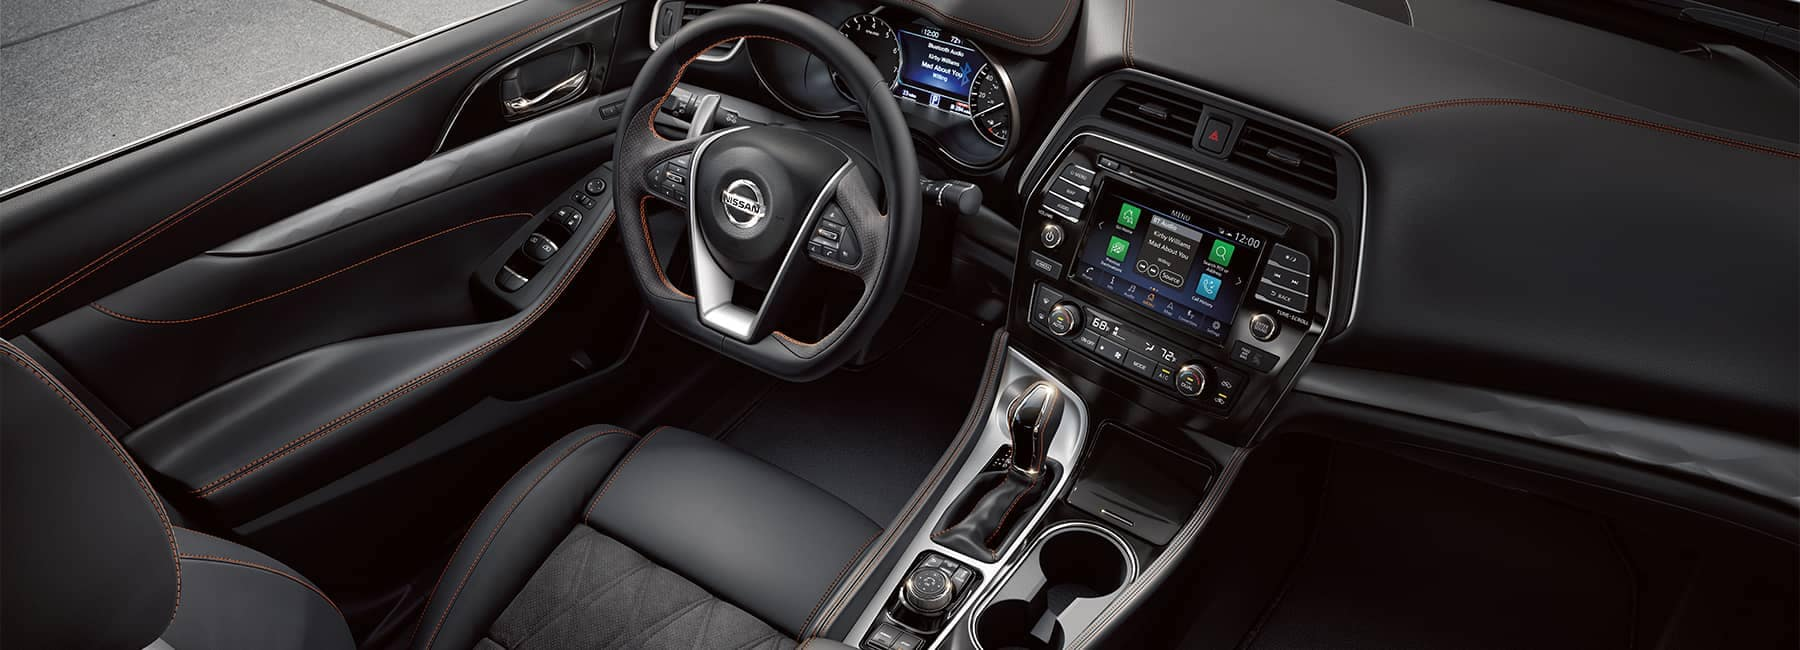 The black leather driver's seat and dashboard of a 2021 Nissan Maxima